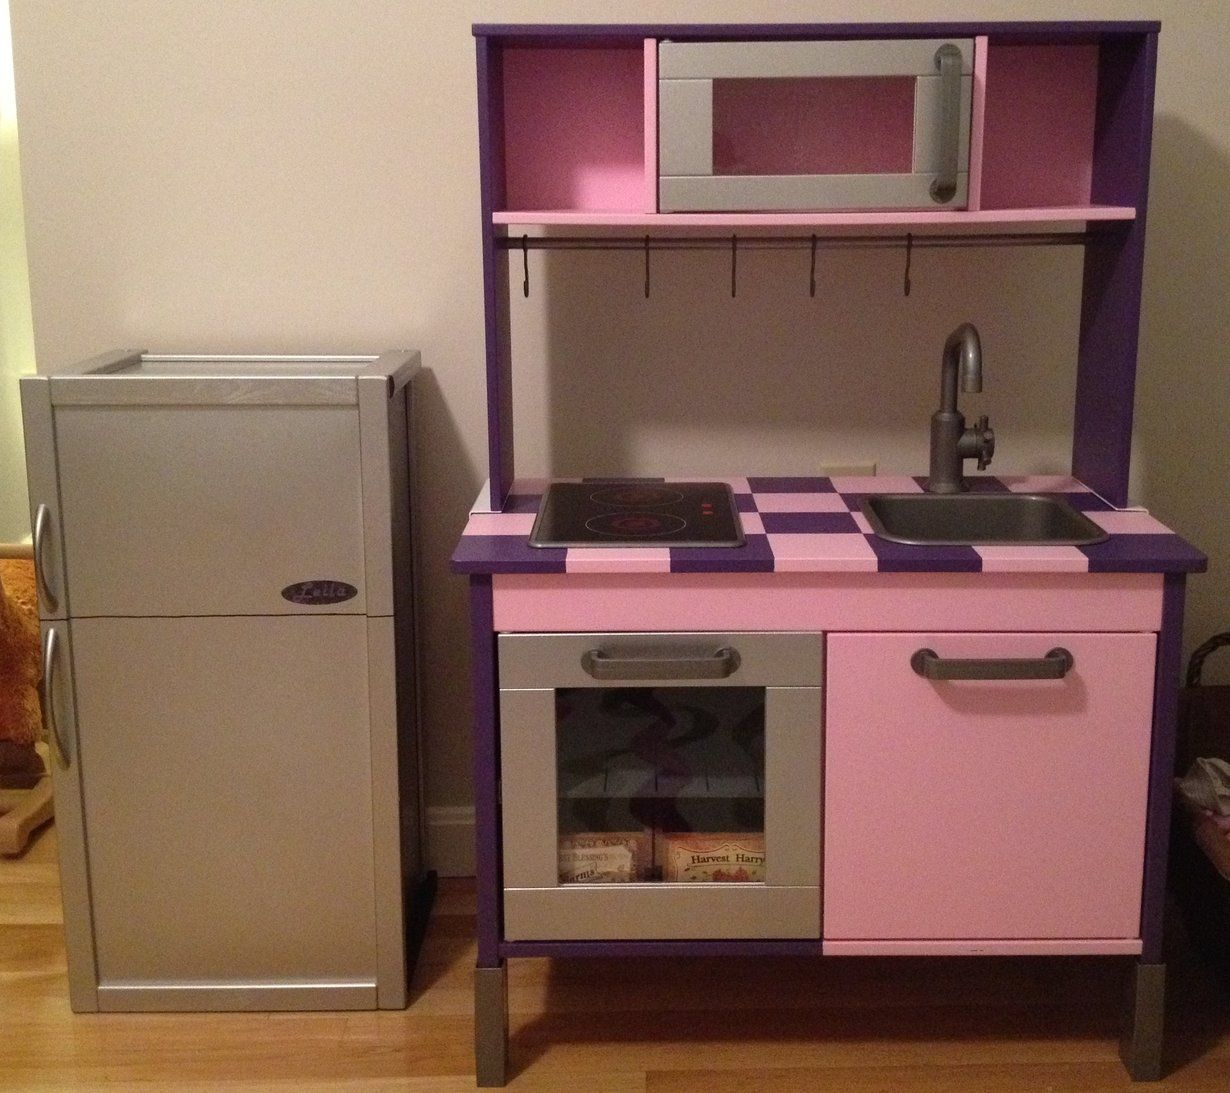 Cocina Ikea Juguete Personalizada Ikea Hackers Children 39s Kitchen And Refrigerator Made